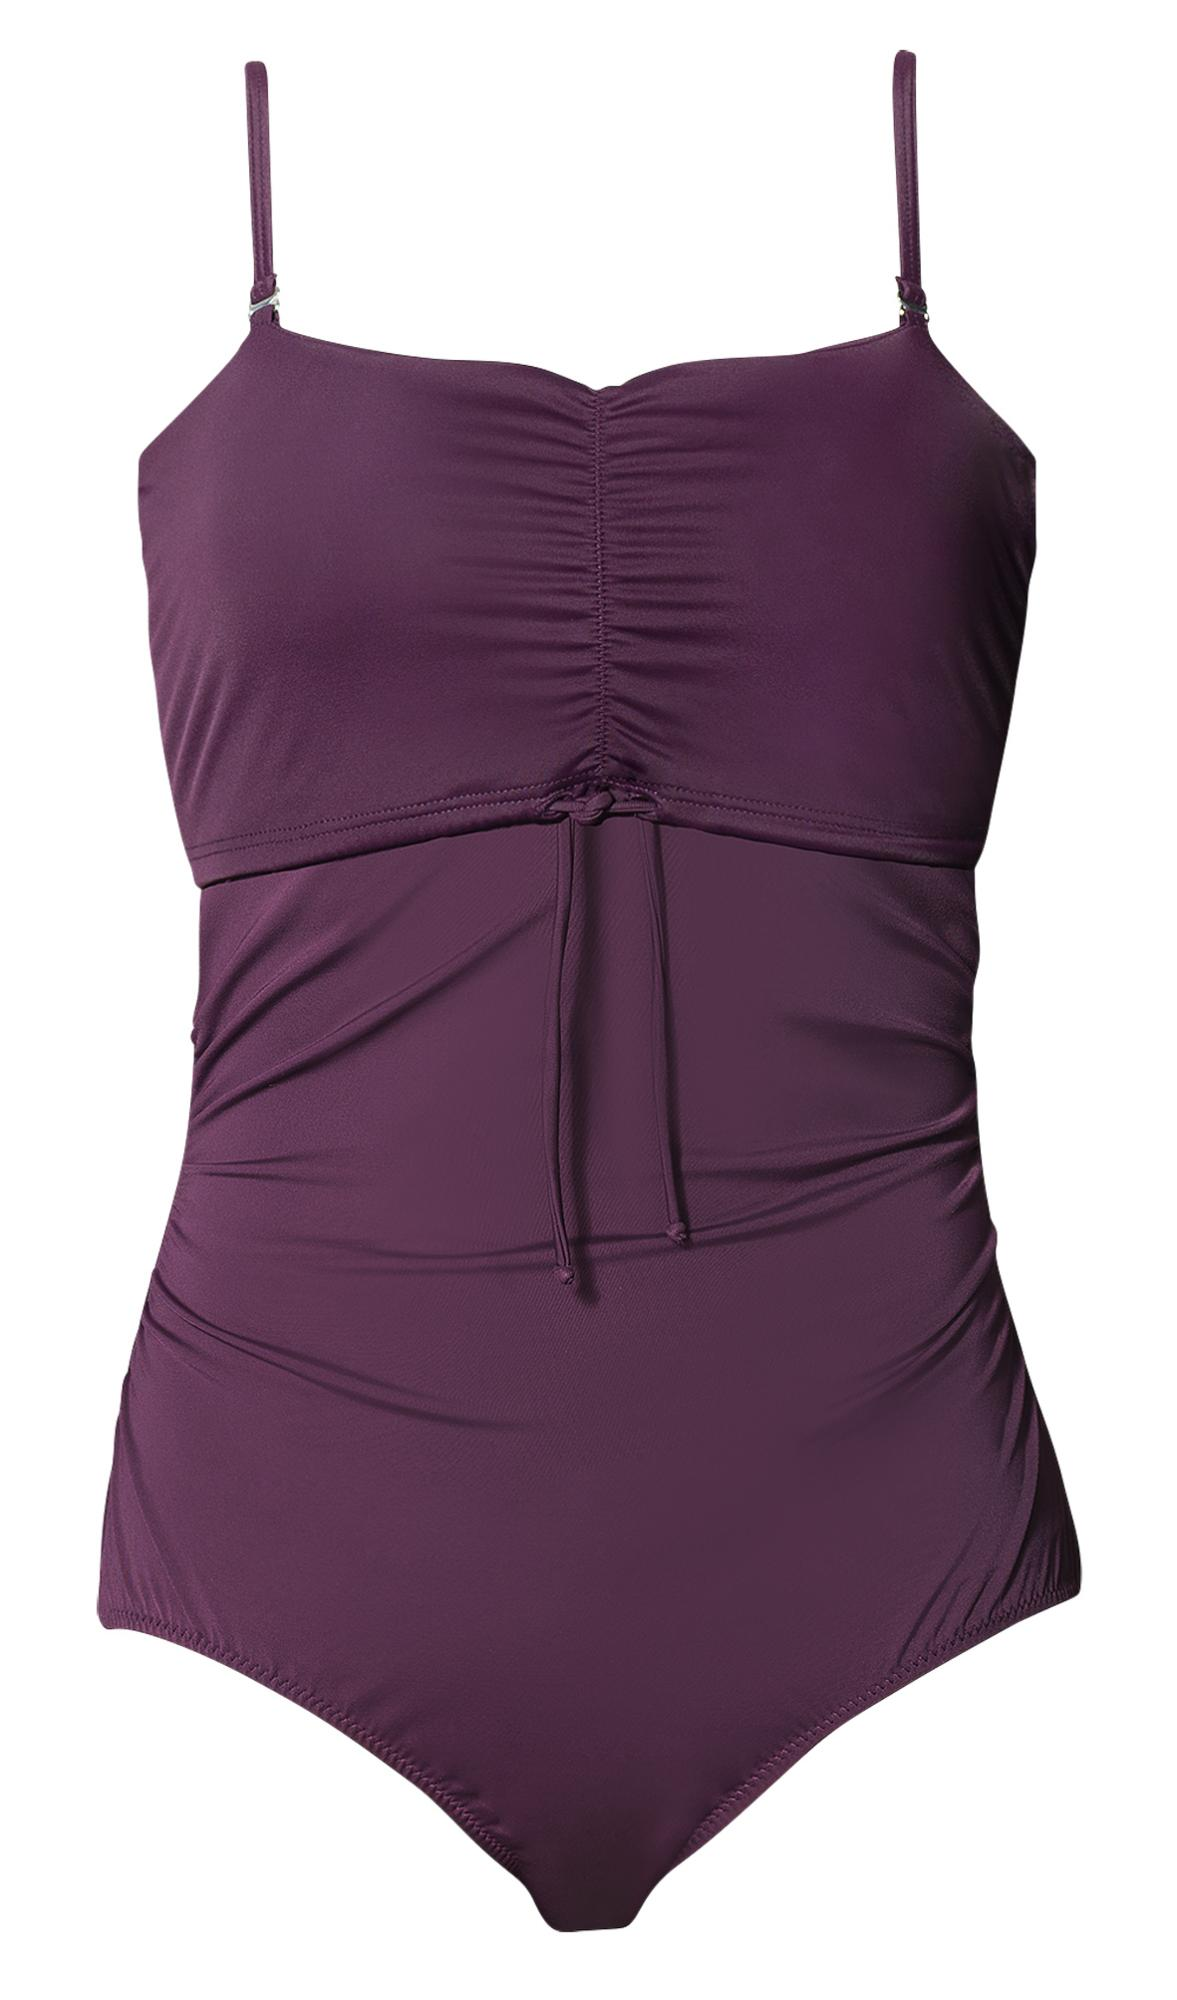 boob-design-nursing-swimsuit-cassis-plain.jpg